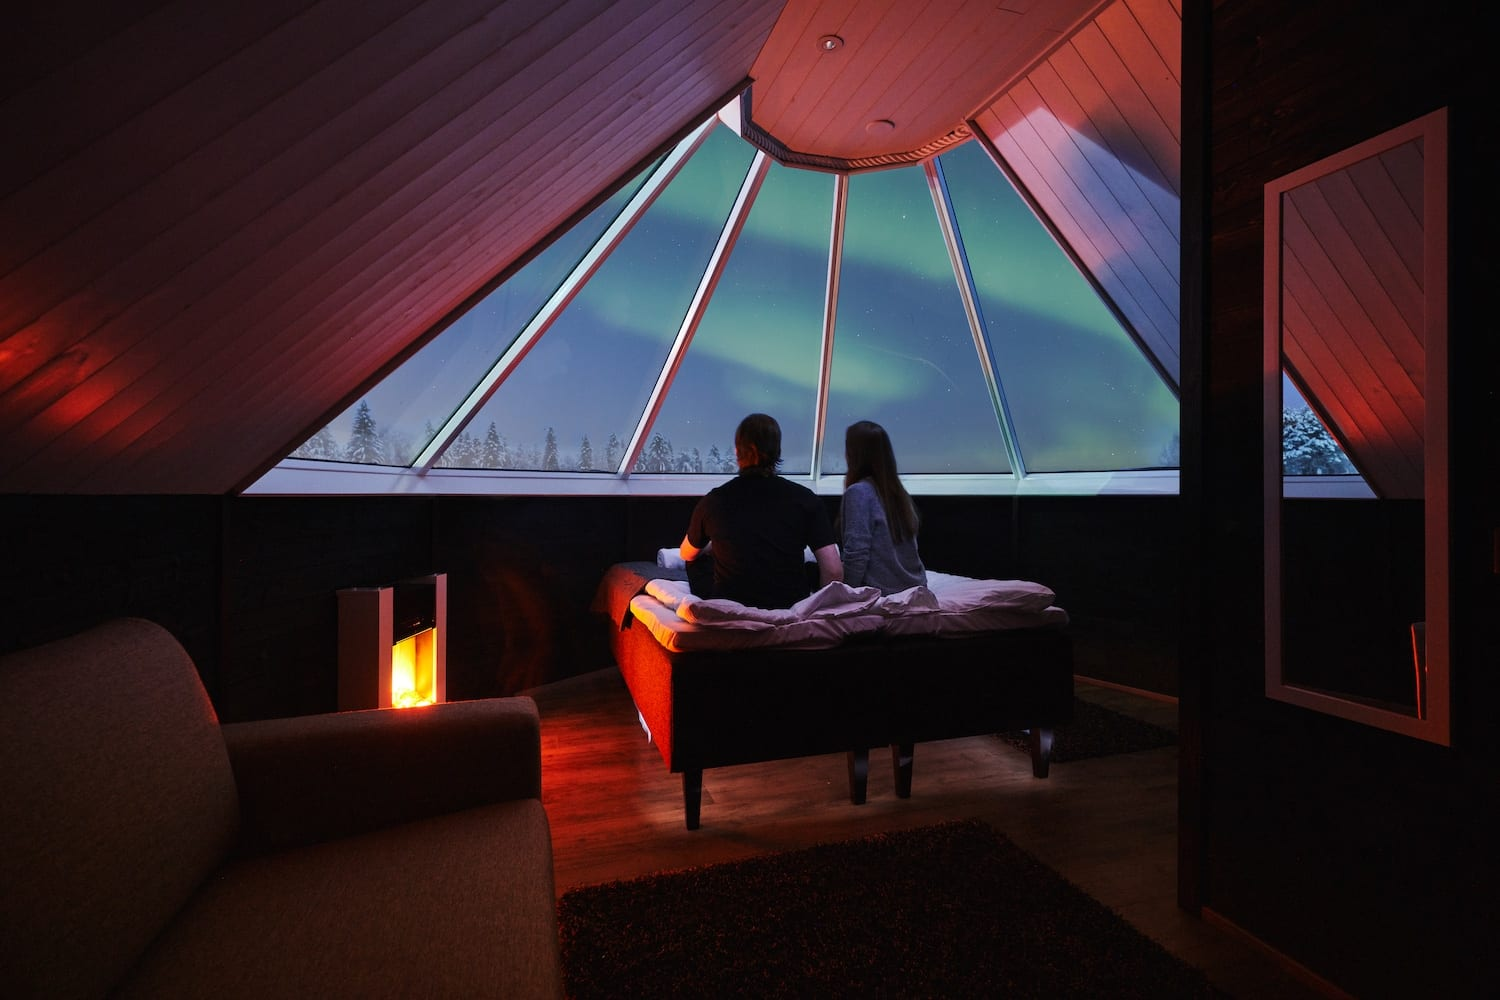 Couple sitting on bed in cosy aurora cabin looking out glass window at northern lights